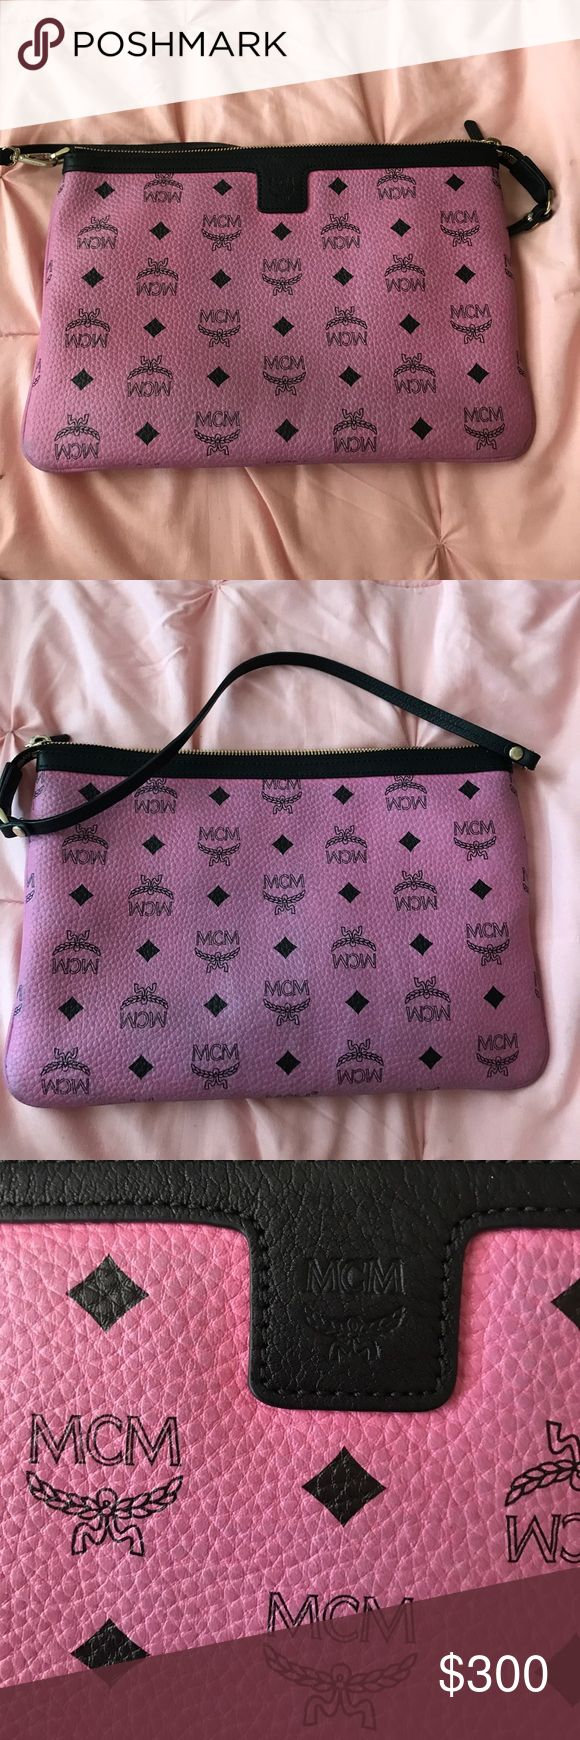 AUTHENTIC MCM Clutch 100% Authentic /// $300 or best offer MCM Bags Clutches & Wristlets